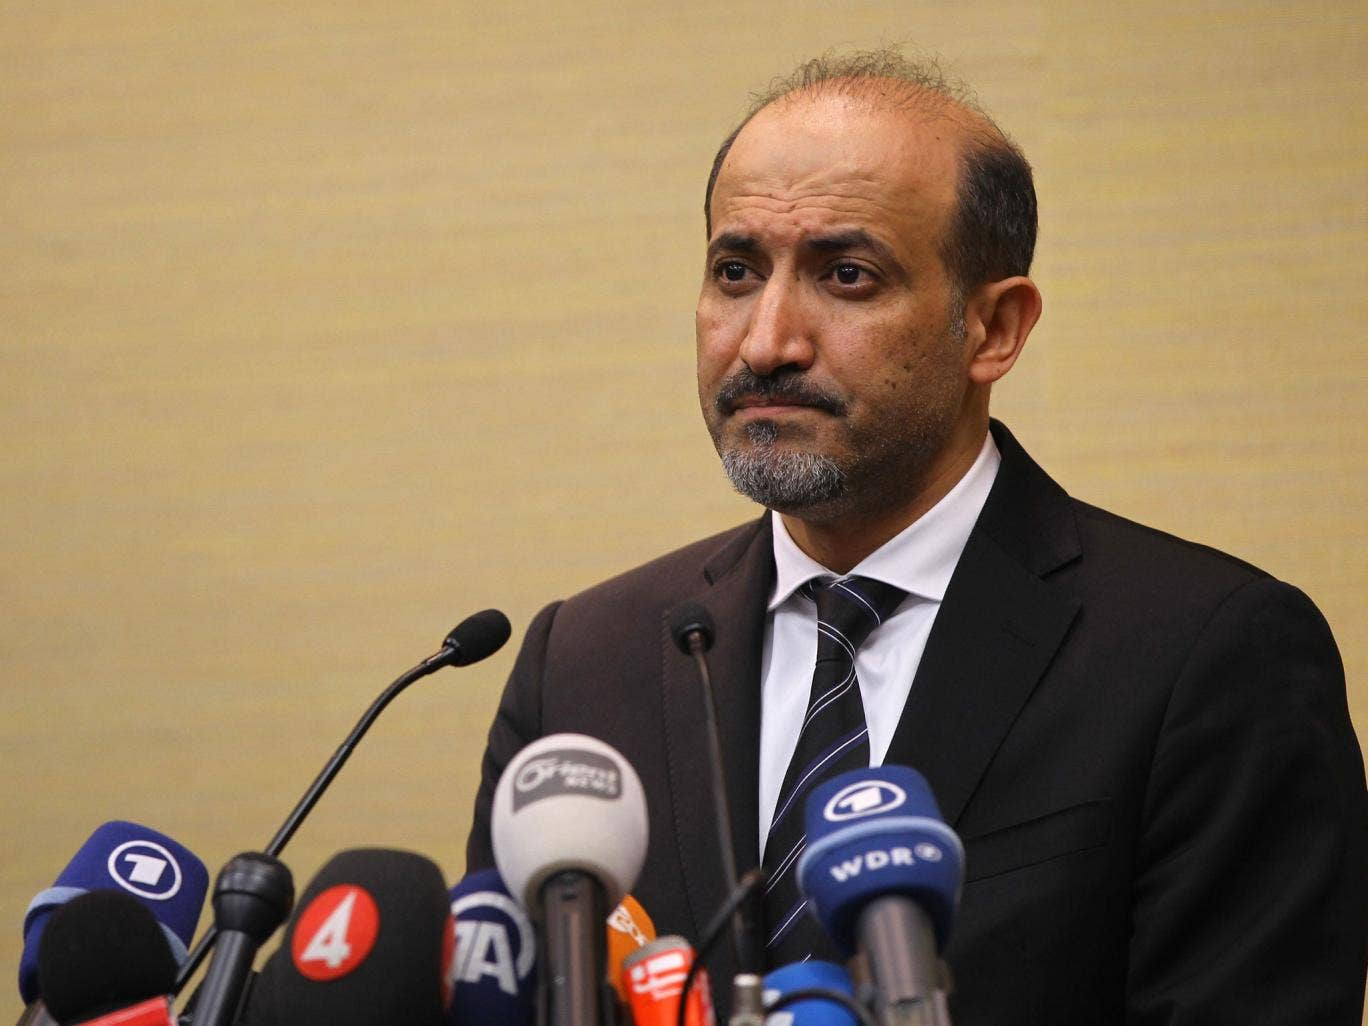 Ahmad al-Jarba, leader of the Syrian National Coalition (SNC), speaks to the press in Geneva, Switzerland